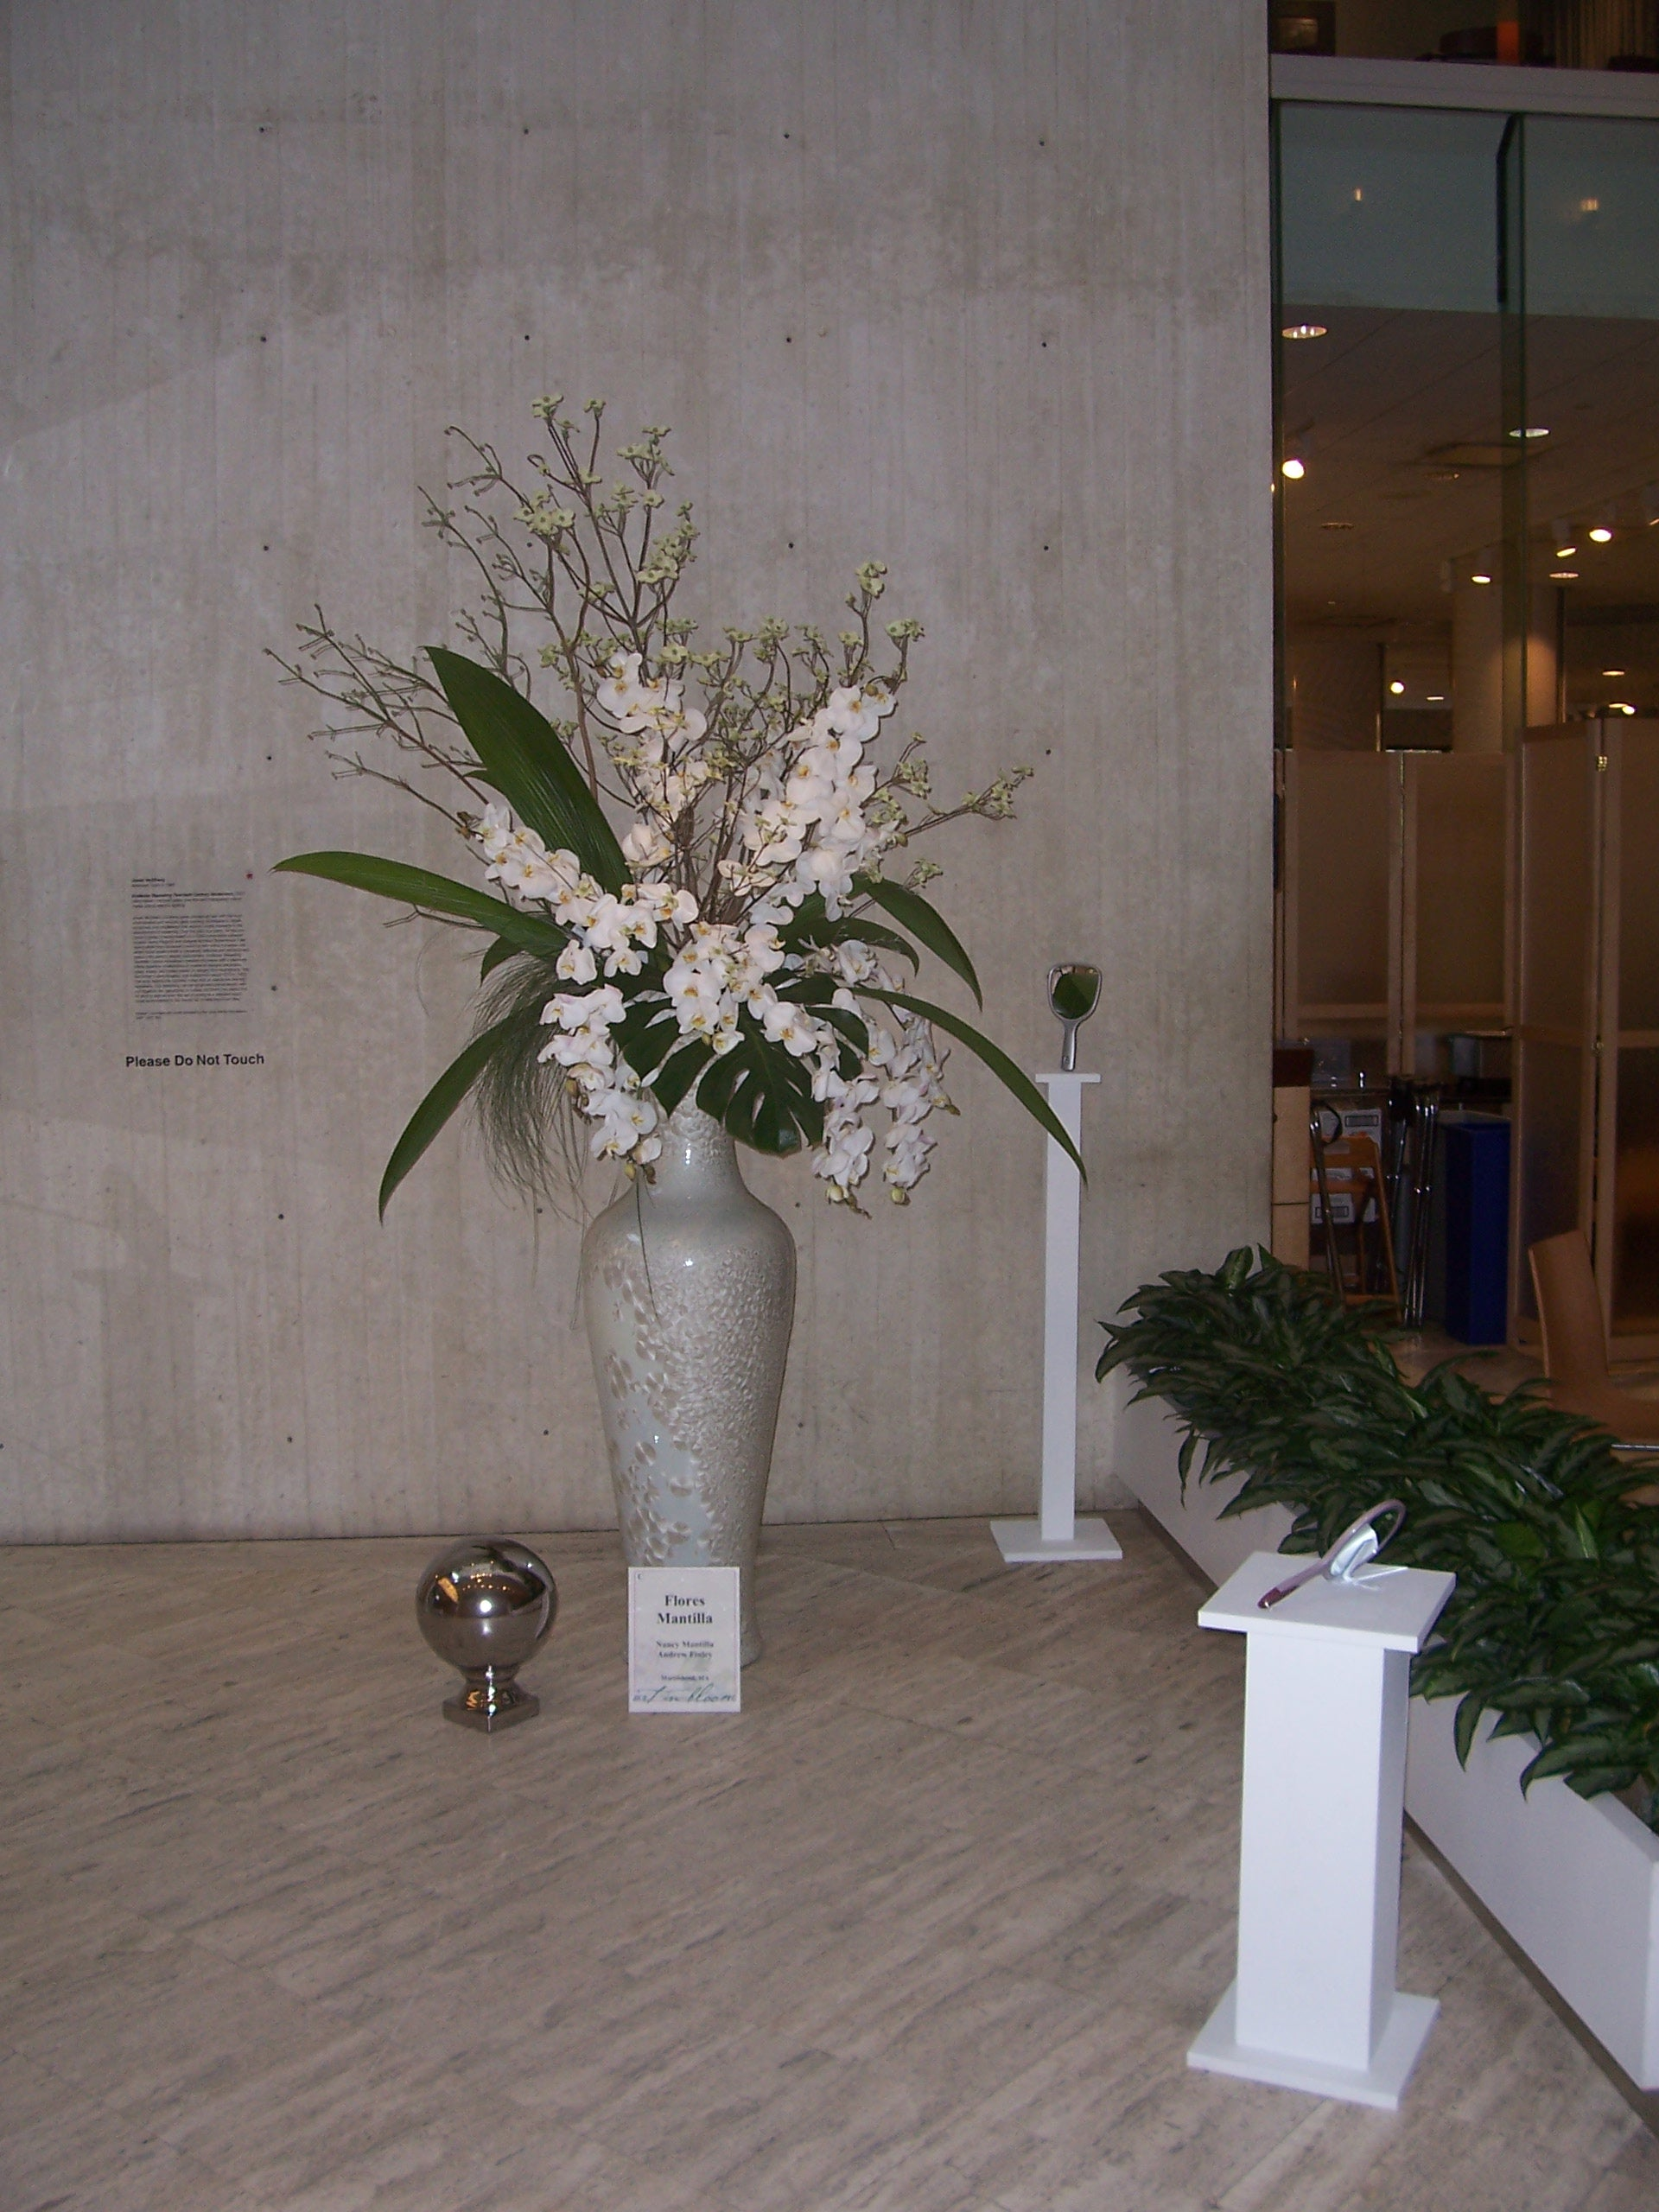 Museum of Fine Arts Floral Display